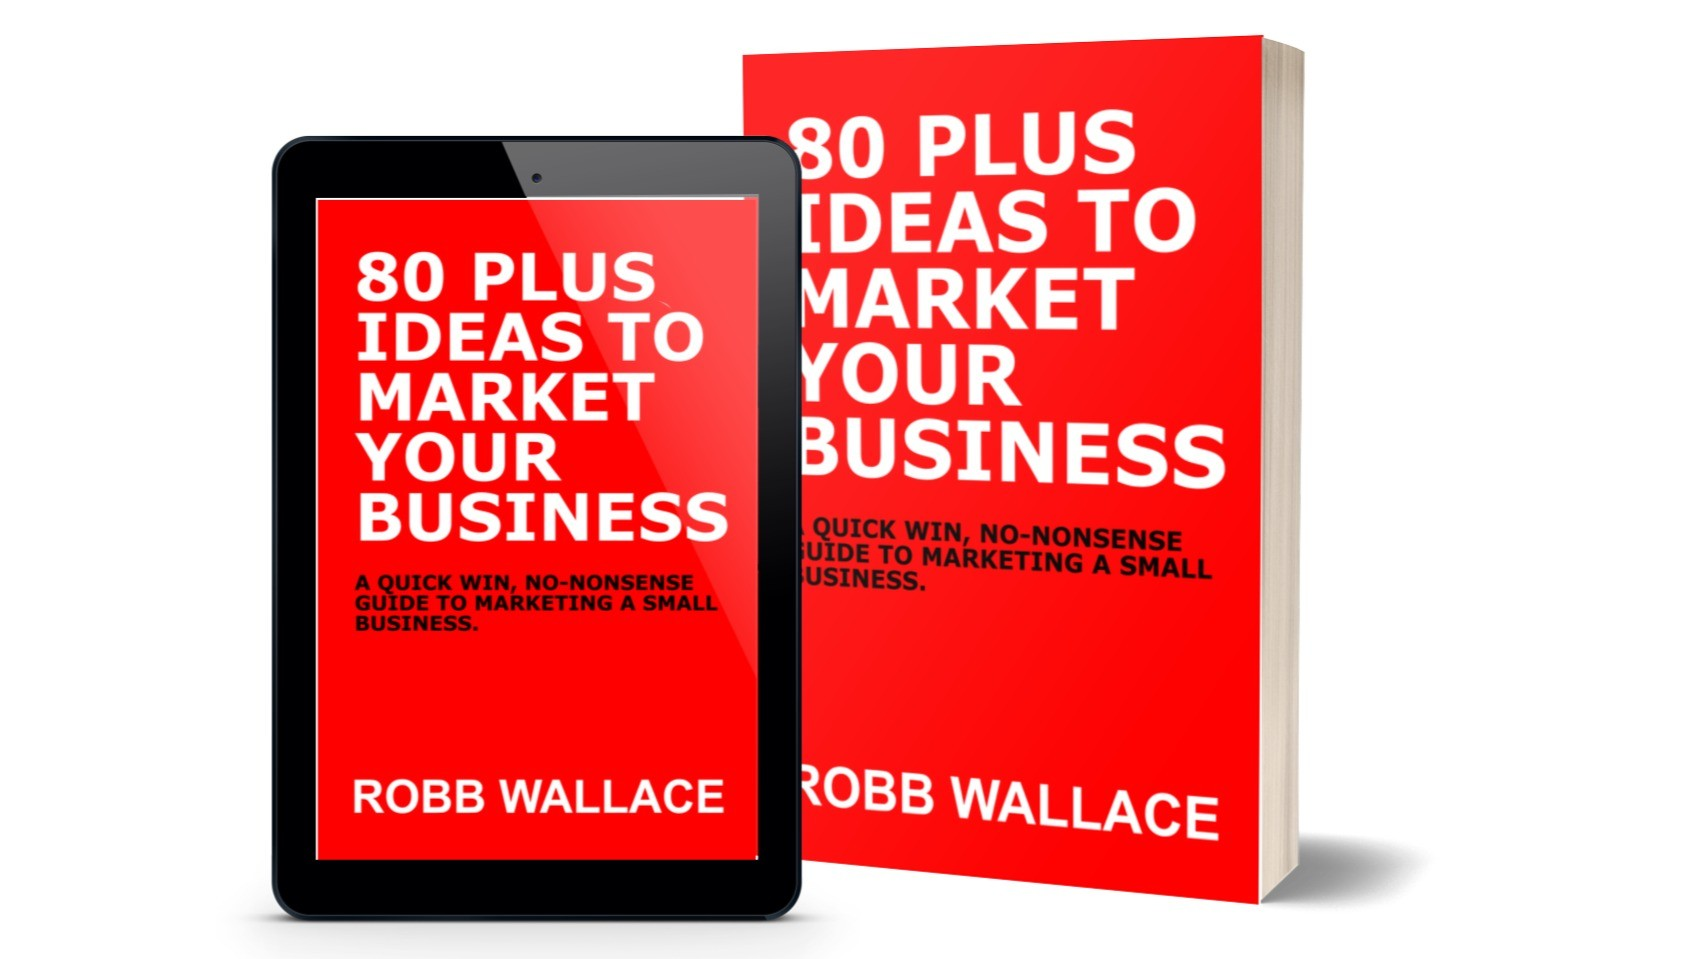 AppSumo Deal for 80 plus ideas to market your business: A quick win, no-nonsense guide to marketing a small business